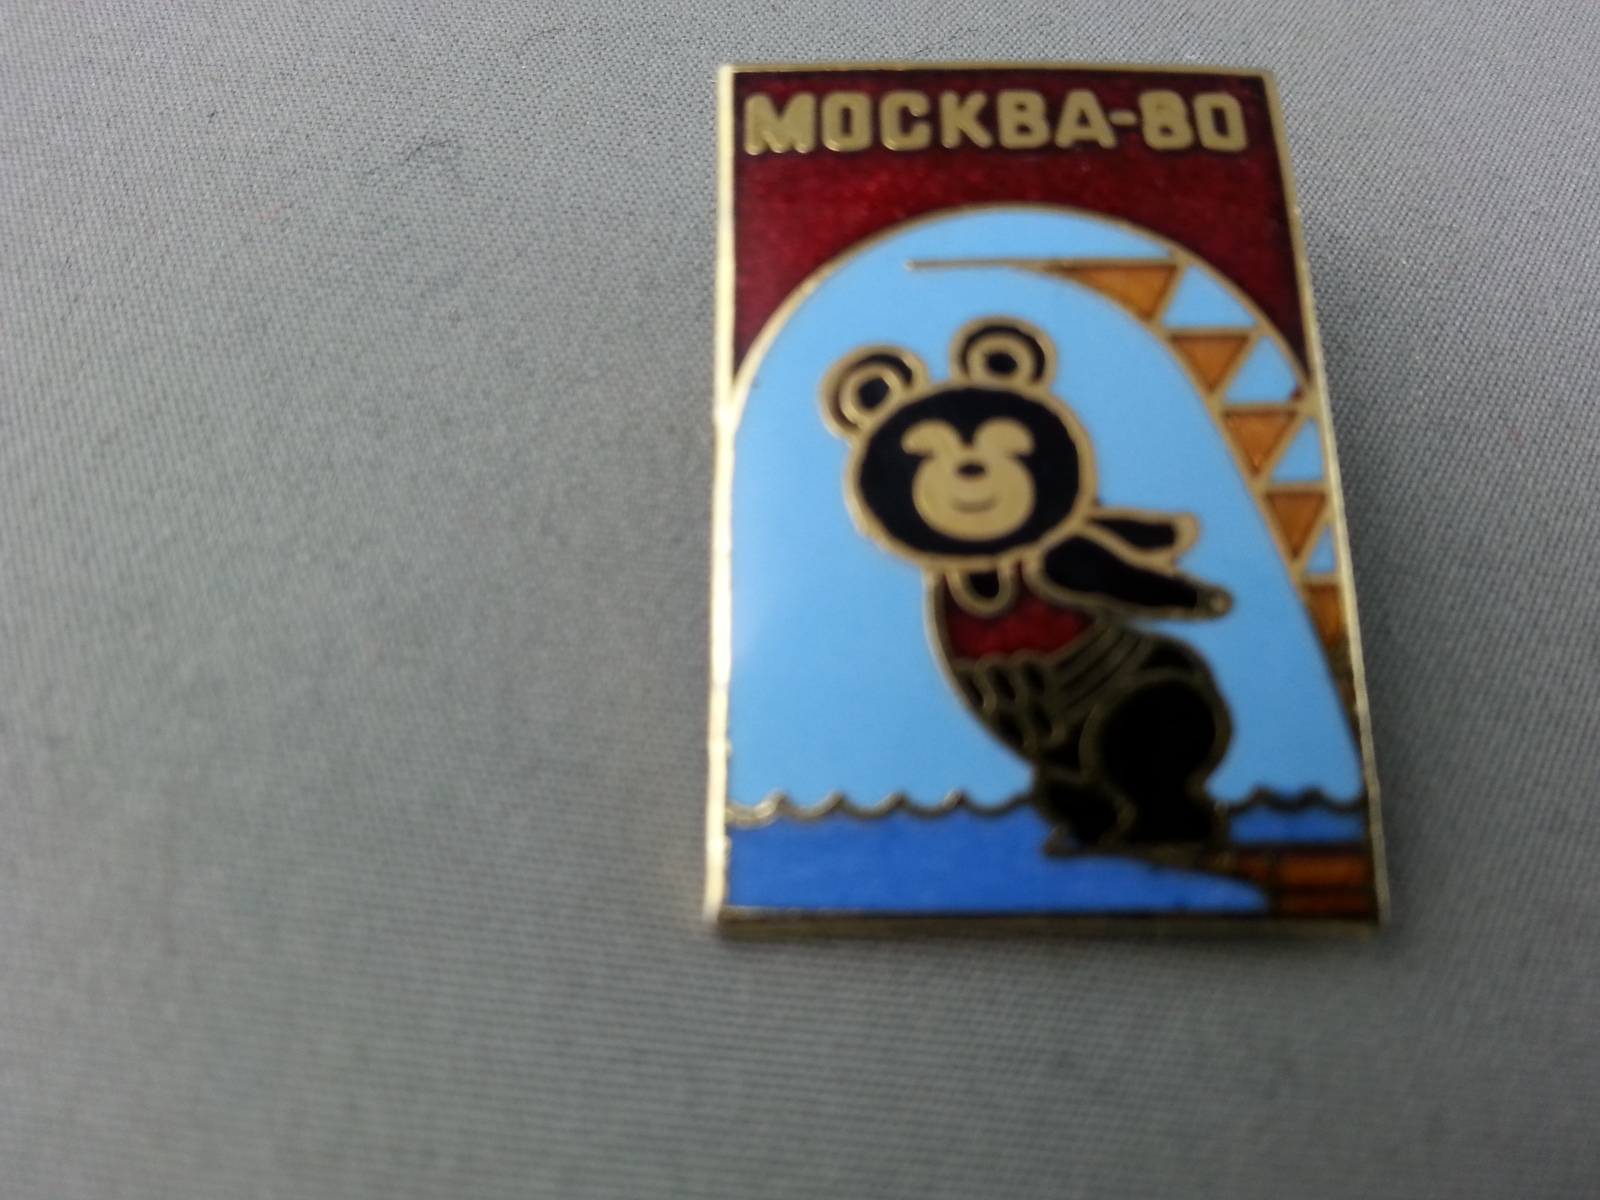 Primary image for 1980 Olympic Games - Moscow, USSR - The boycott Games -- Diving event pin